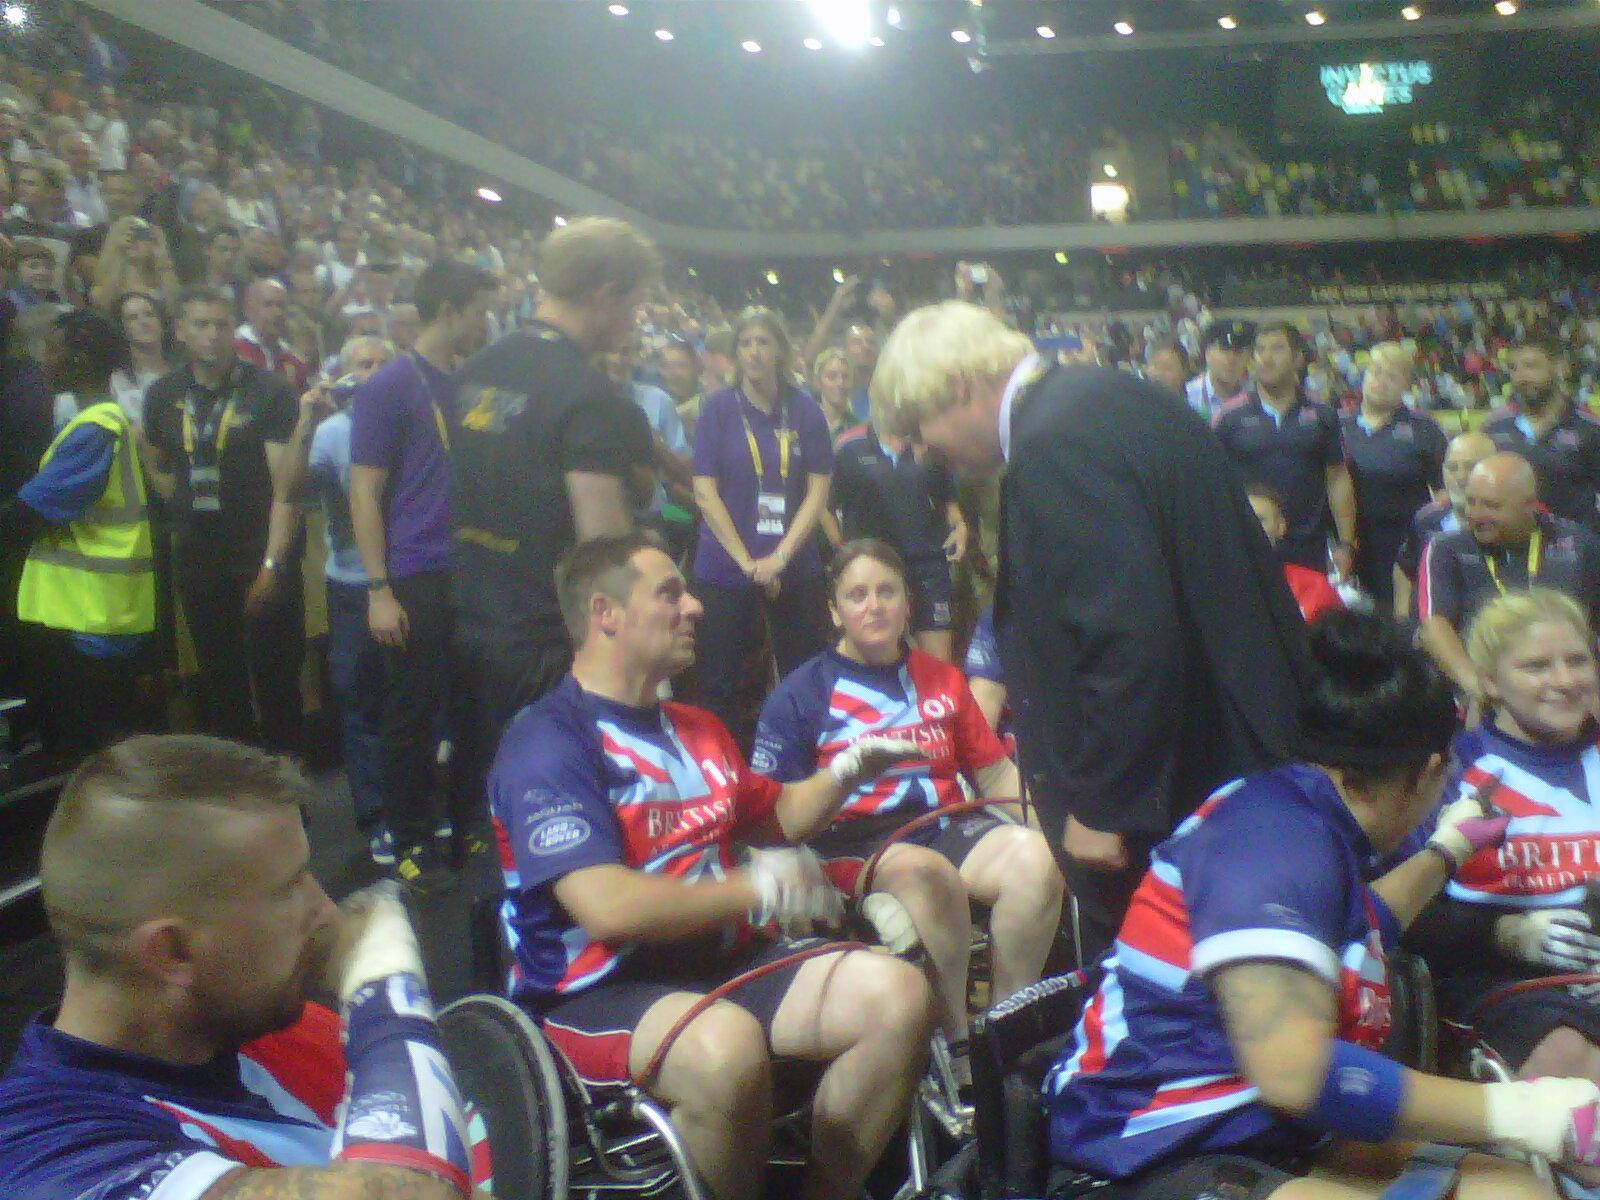 Thrilled to watch Team GB thrash the Aussies @InvictusLondon Wheelchair Rugby & meet the winning team w/ Prince Harry http://t.co/UFo1ehZ6wv